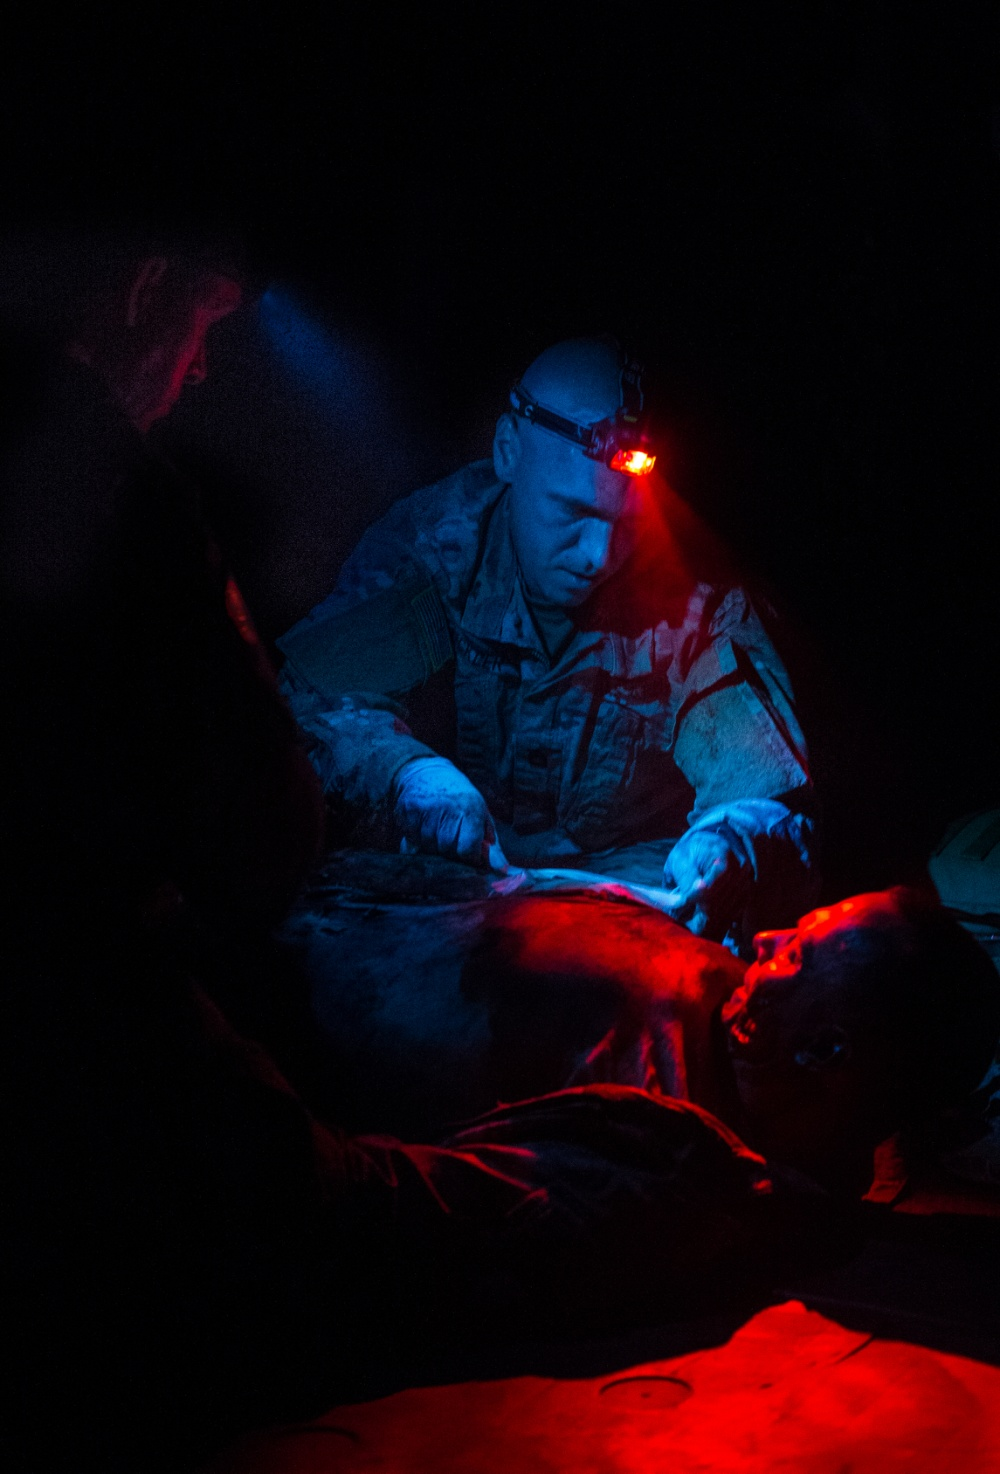 The Operational Annex at the Charles A. Andersen Simulation Center helps prepare soldiers to be medically ready for combat deployments.